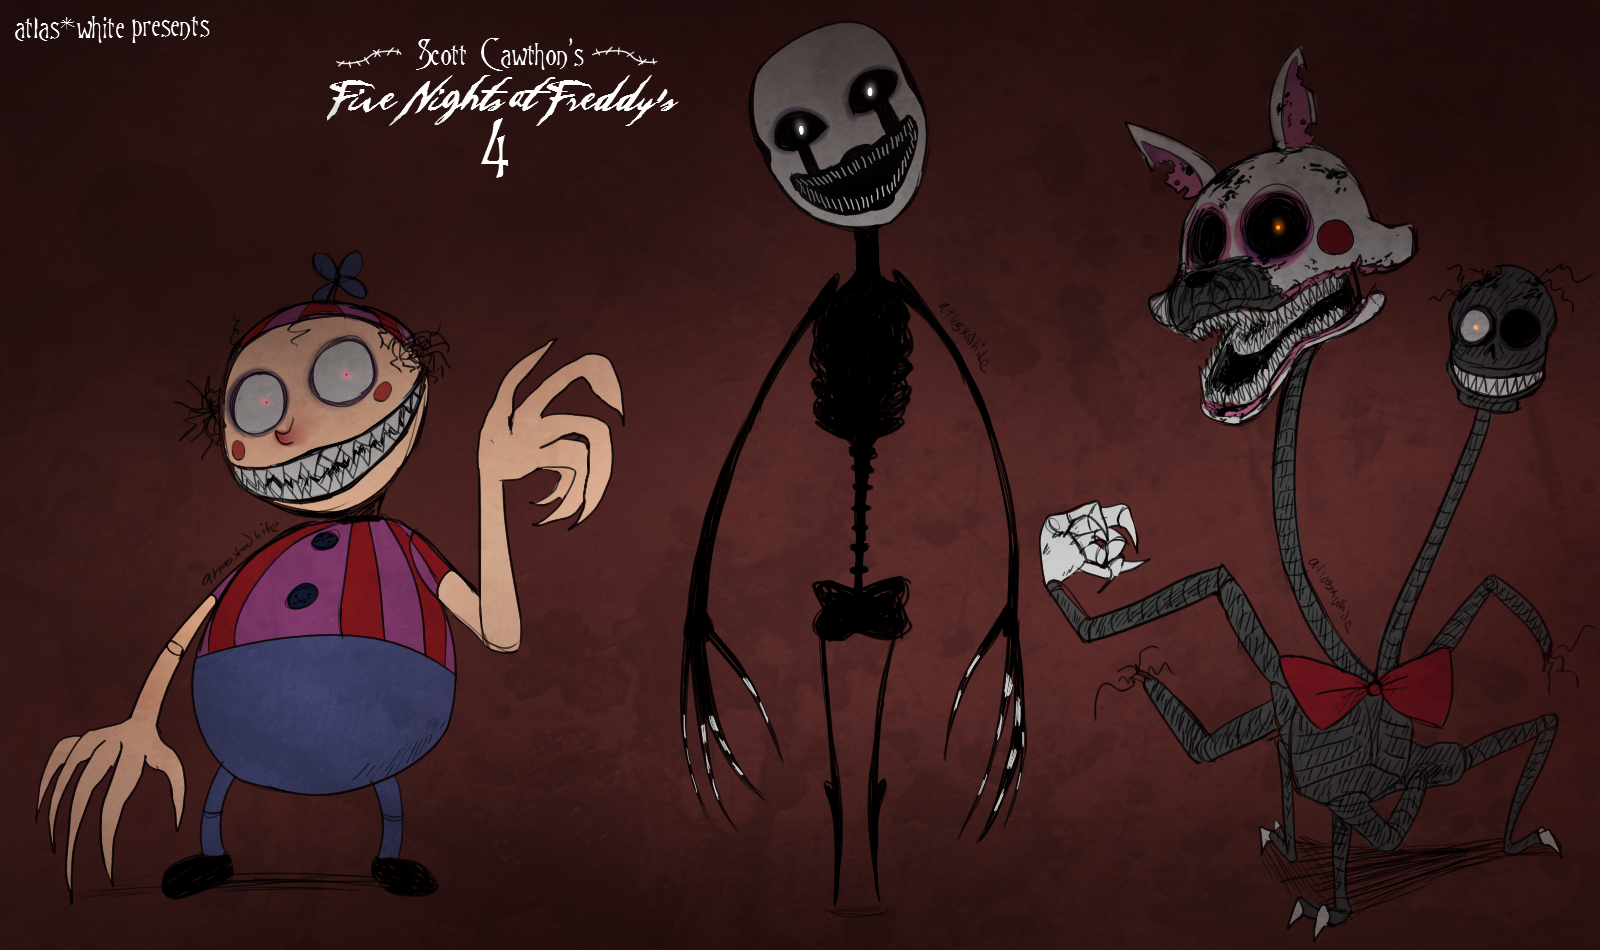 five nights at freddys 4 the new nightmares by atlas